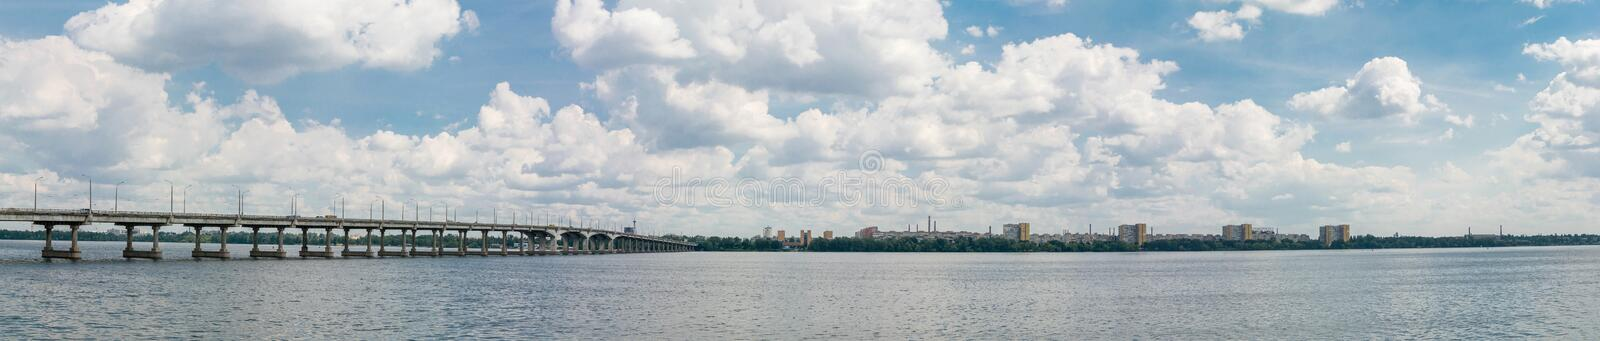 Dnepropetrovsk Dnipropetrovsk, Dnepr, Dnipro view of the city royalty free stock image